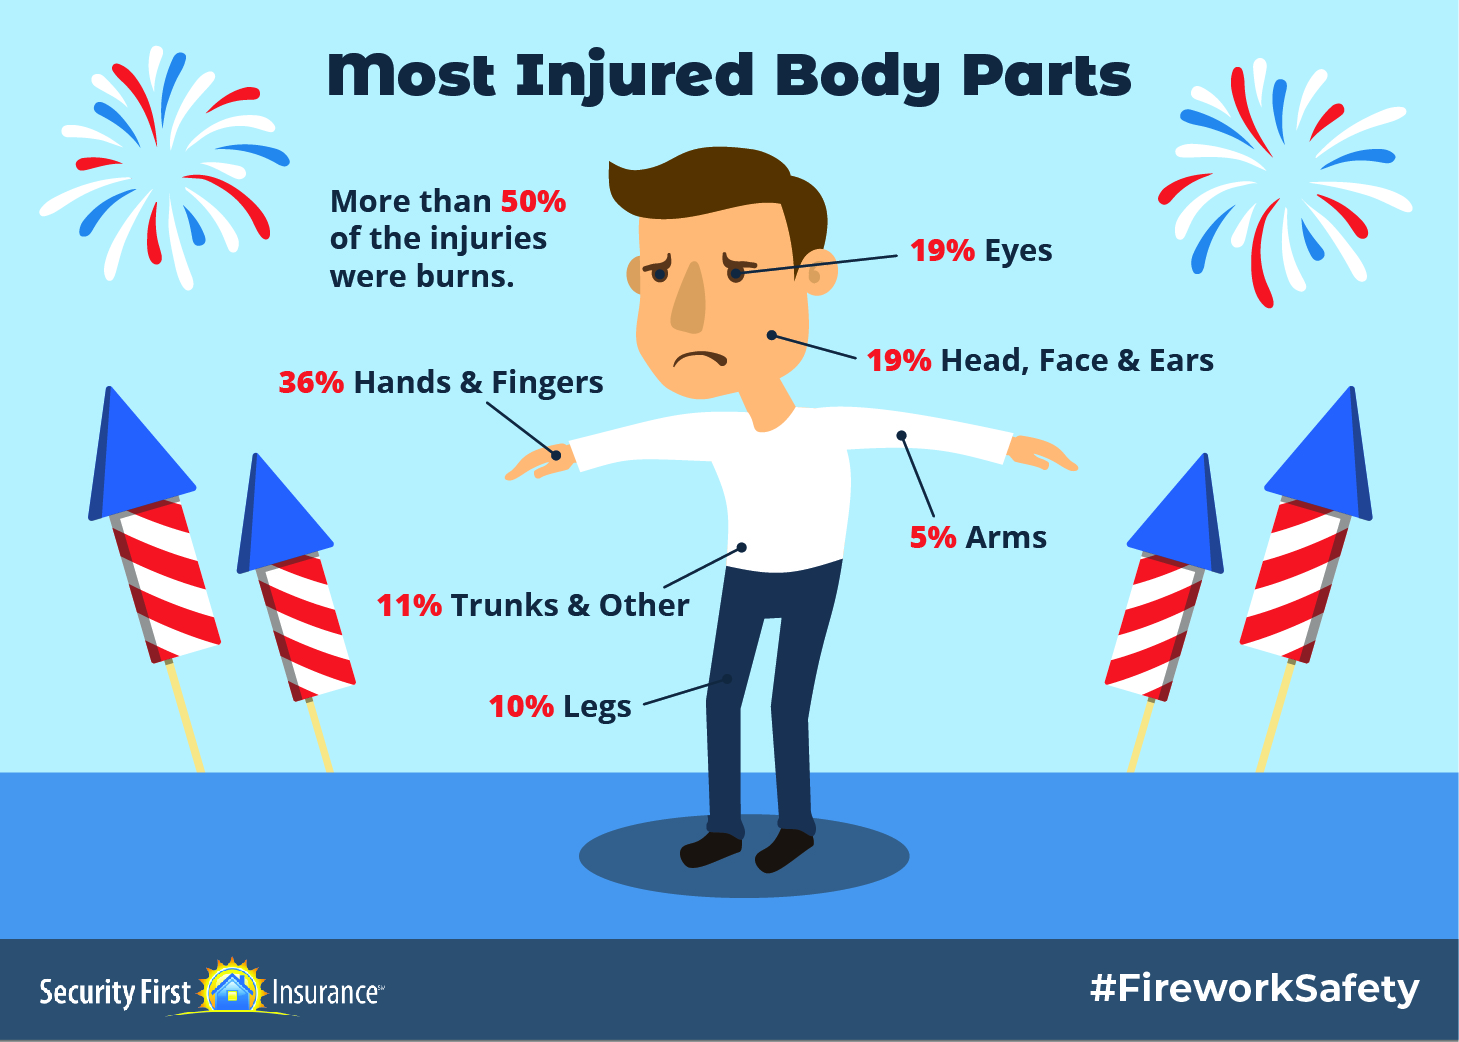 Likelihood of body parts getting injured by fireworks